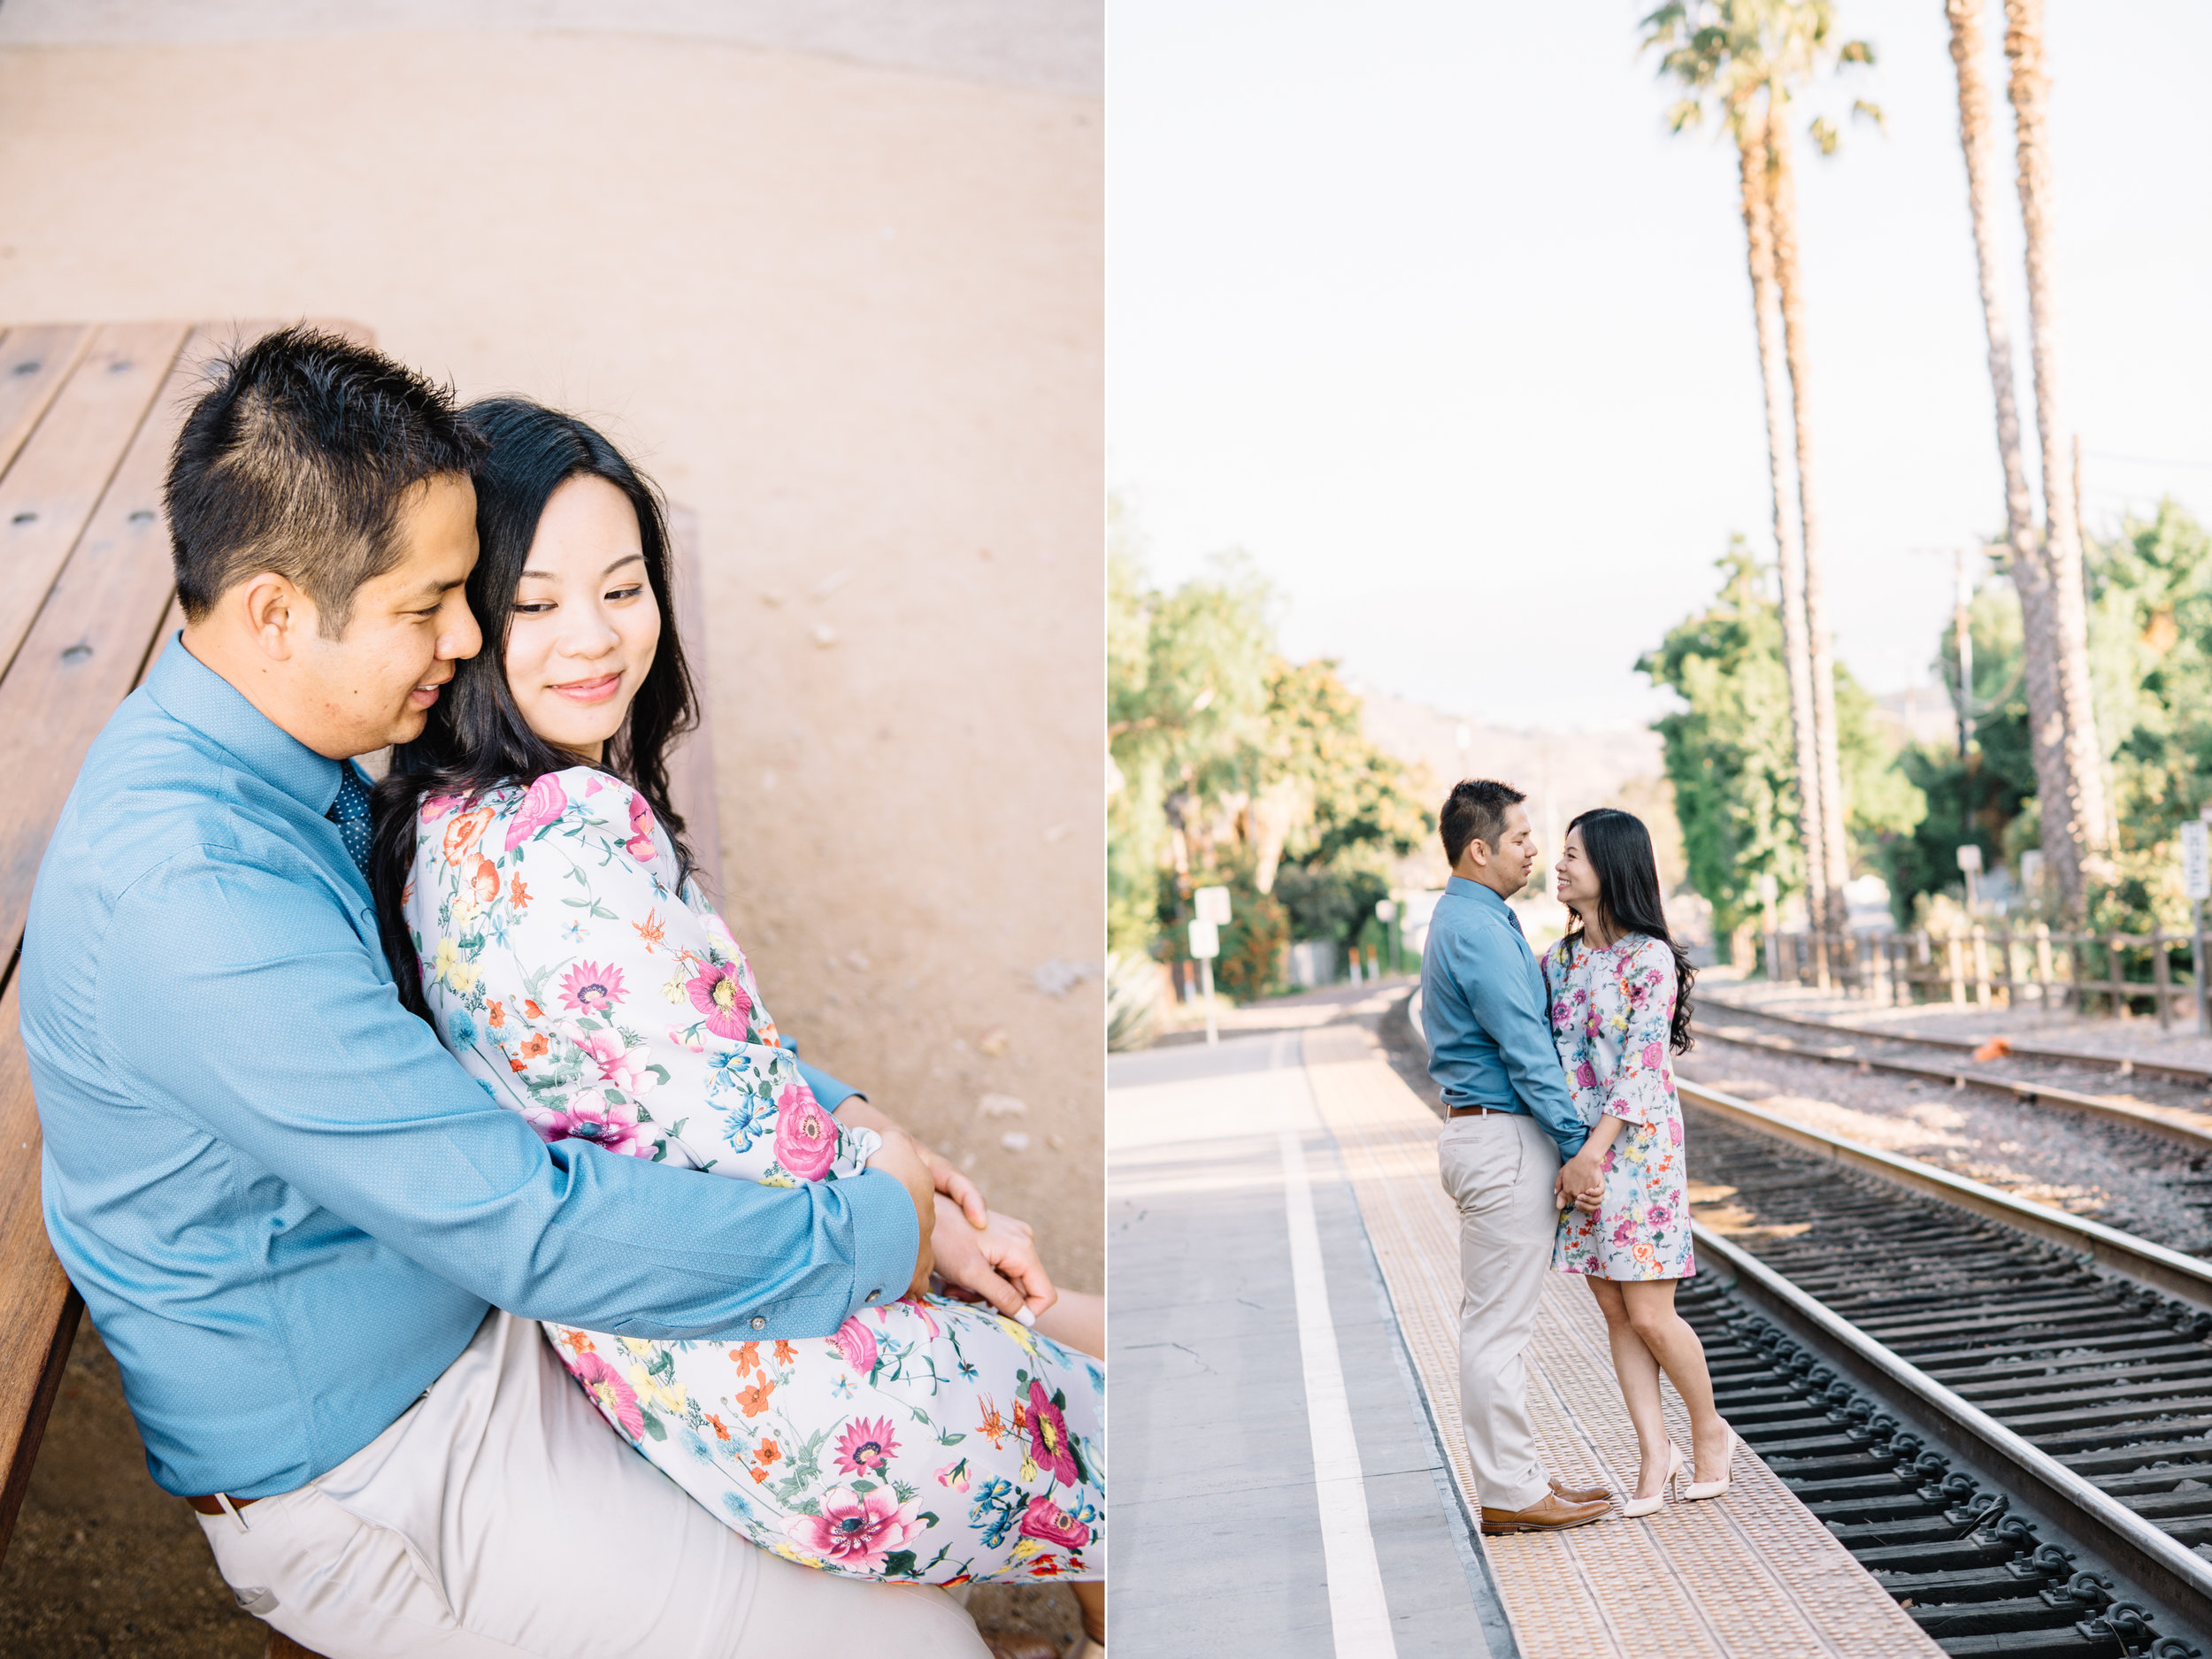 jennifer-jayn-photography-san-juan-capistrano-engagement-session-07.jpg